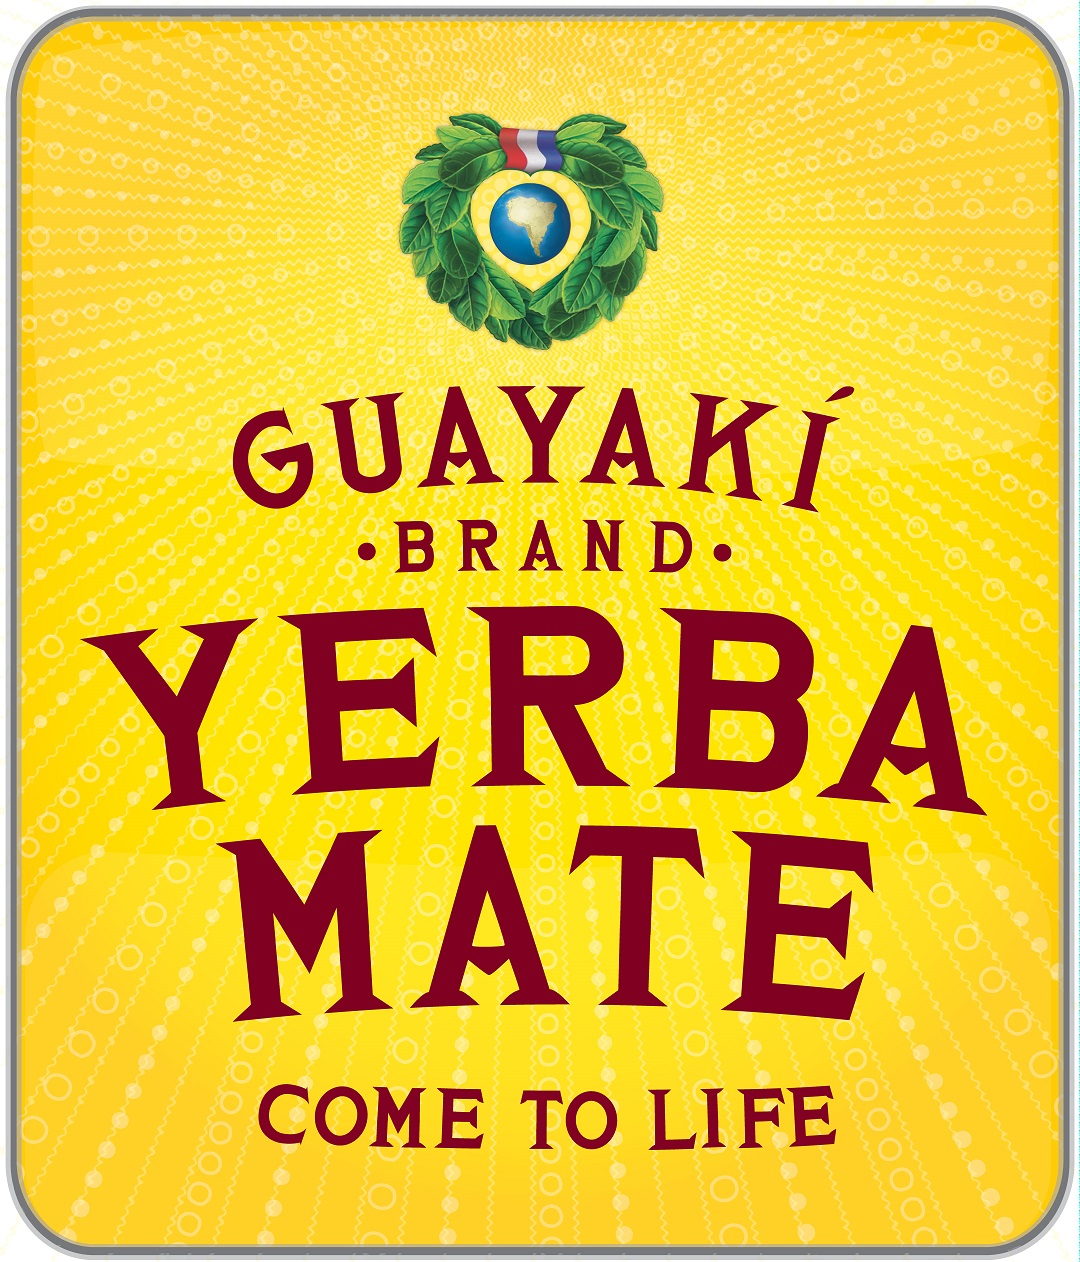 Guayaki Sustainable Rainforest Products, Oakland, CA - Localwise business profile picture